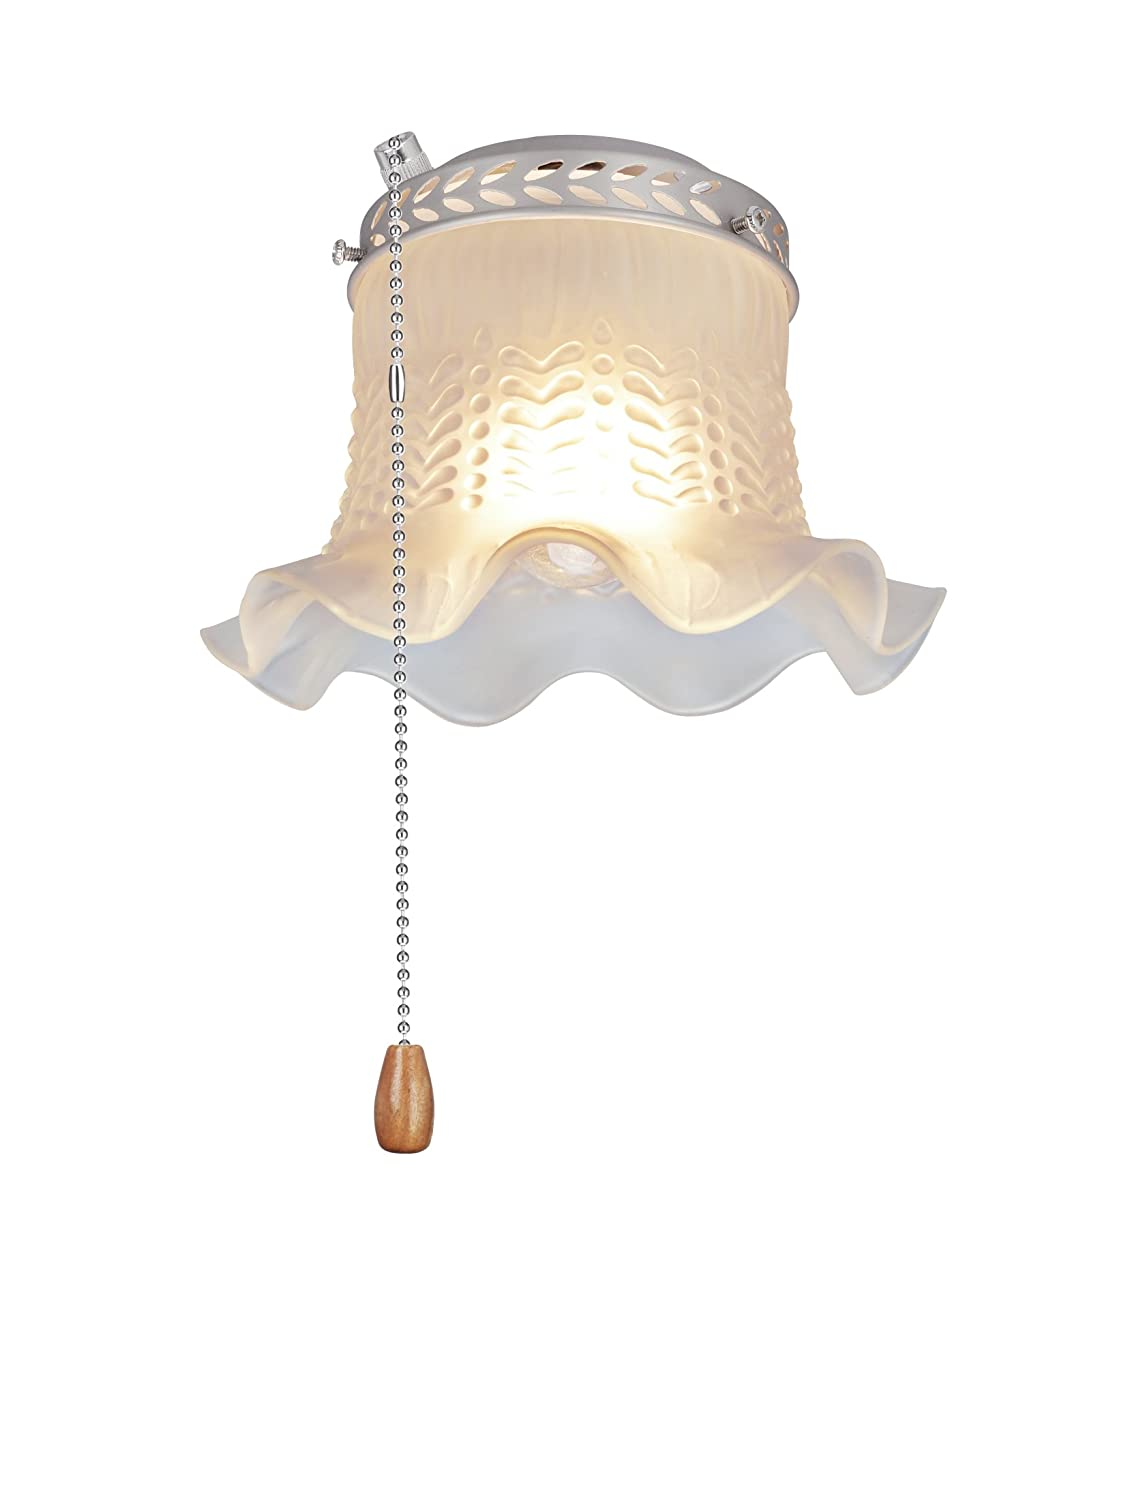 One Ceiling Fan Fitter Light Kit with Pull Chain 4 1//2 Diameter Brushed Nickel Aspen Creative 22001-11